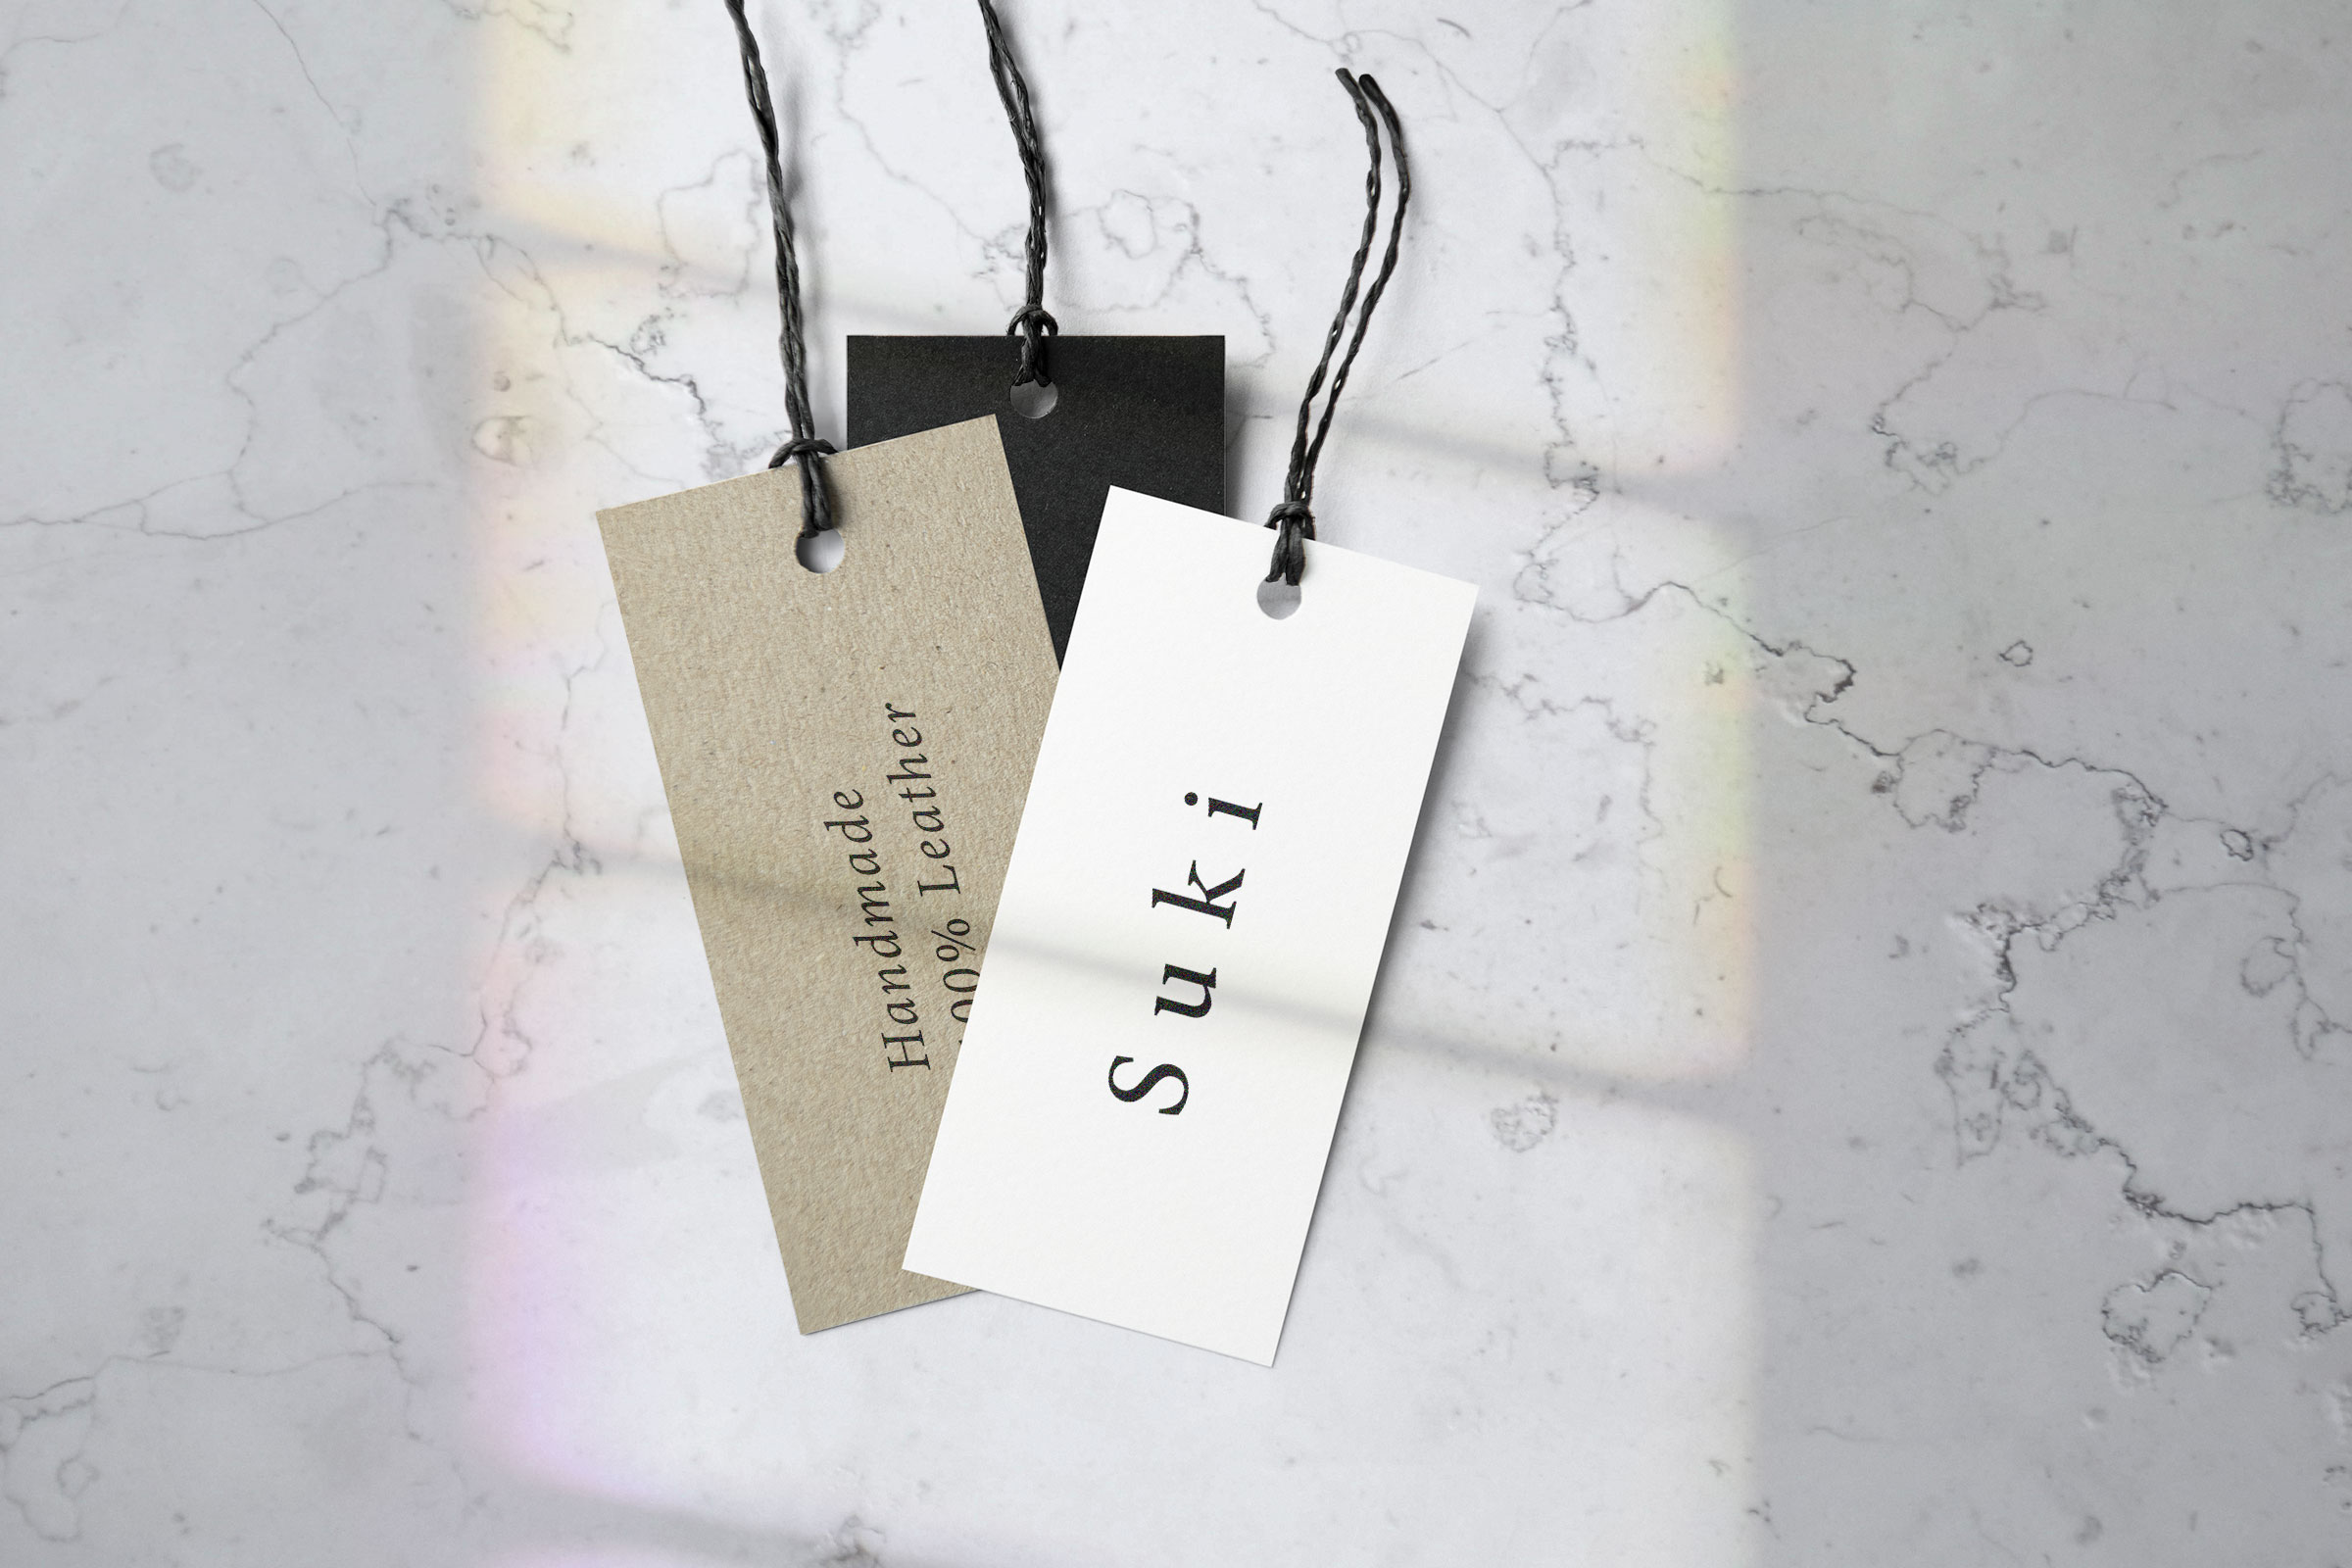 Suki Paris – Website, Logo & Brand Assets